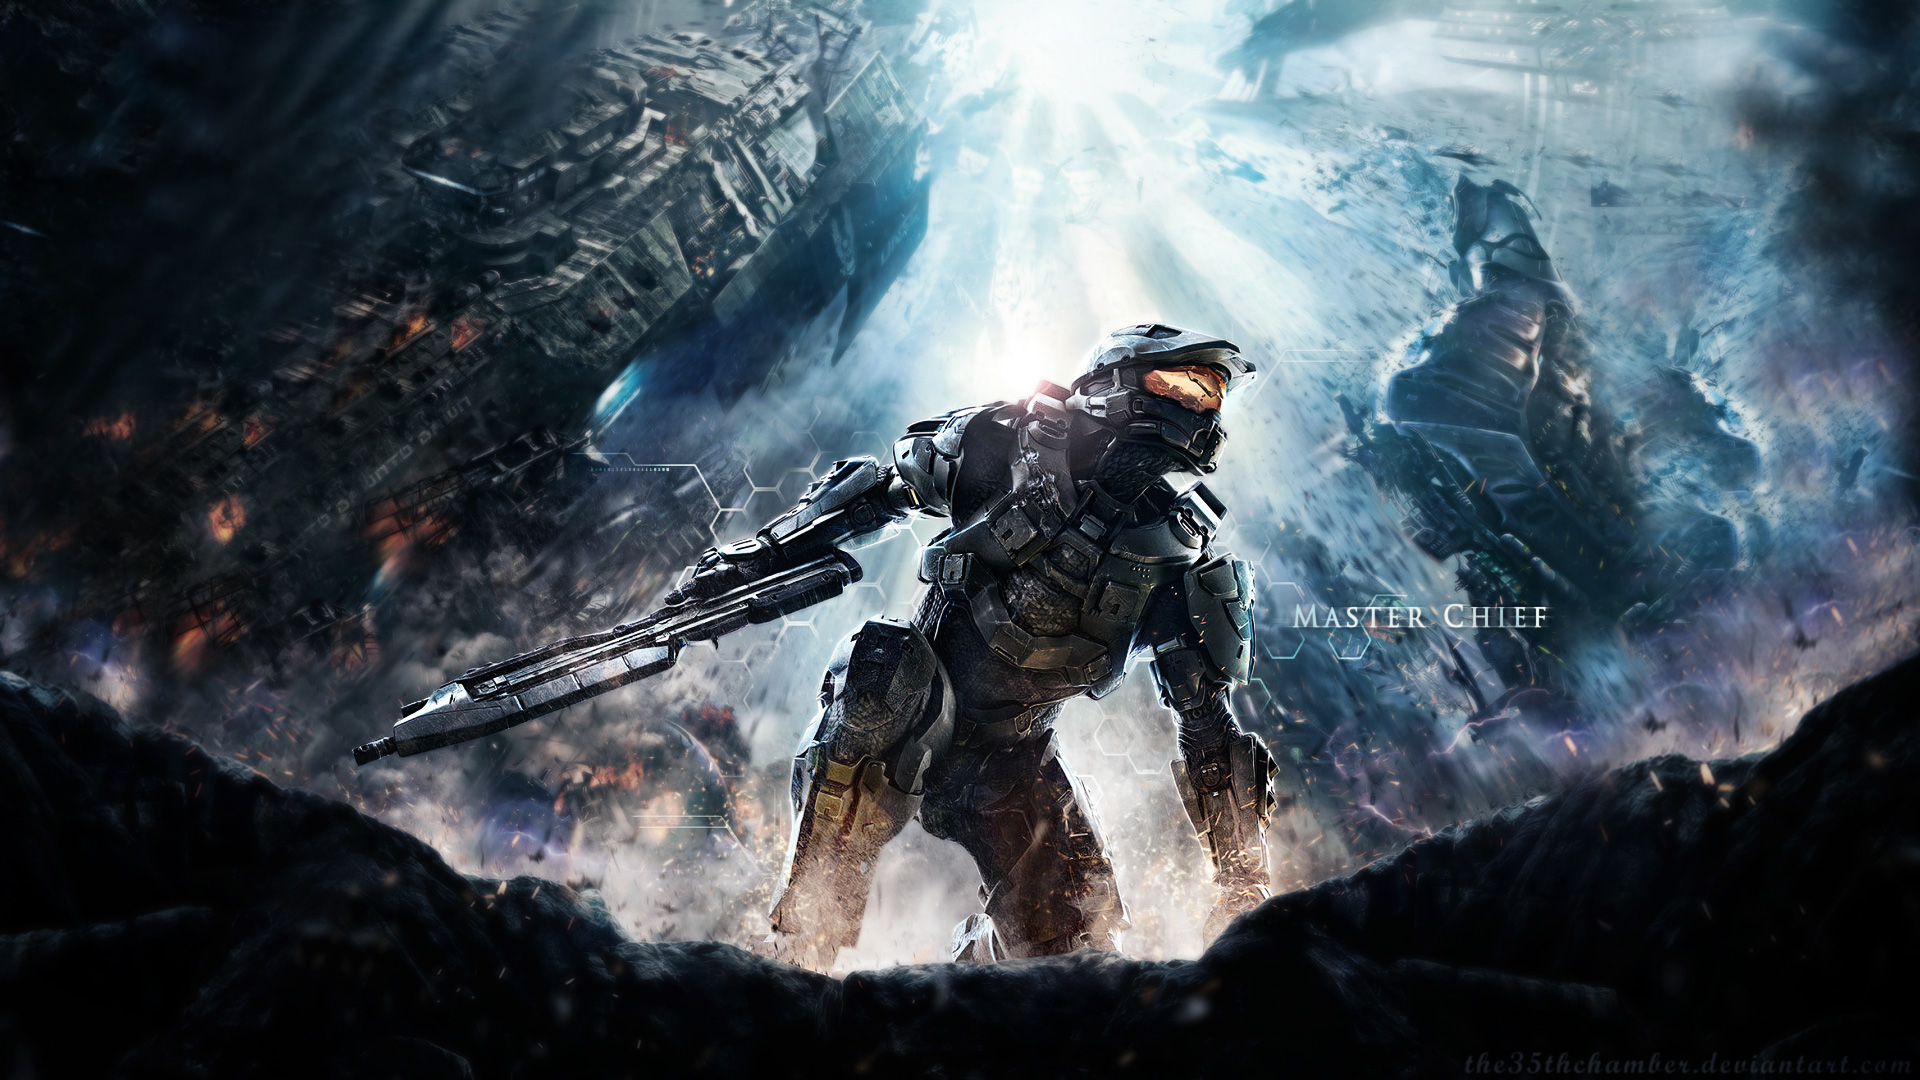 Halo 4 Wallpapers in HD Page 4 1920x1080